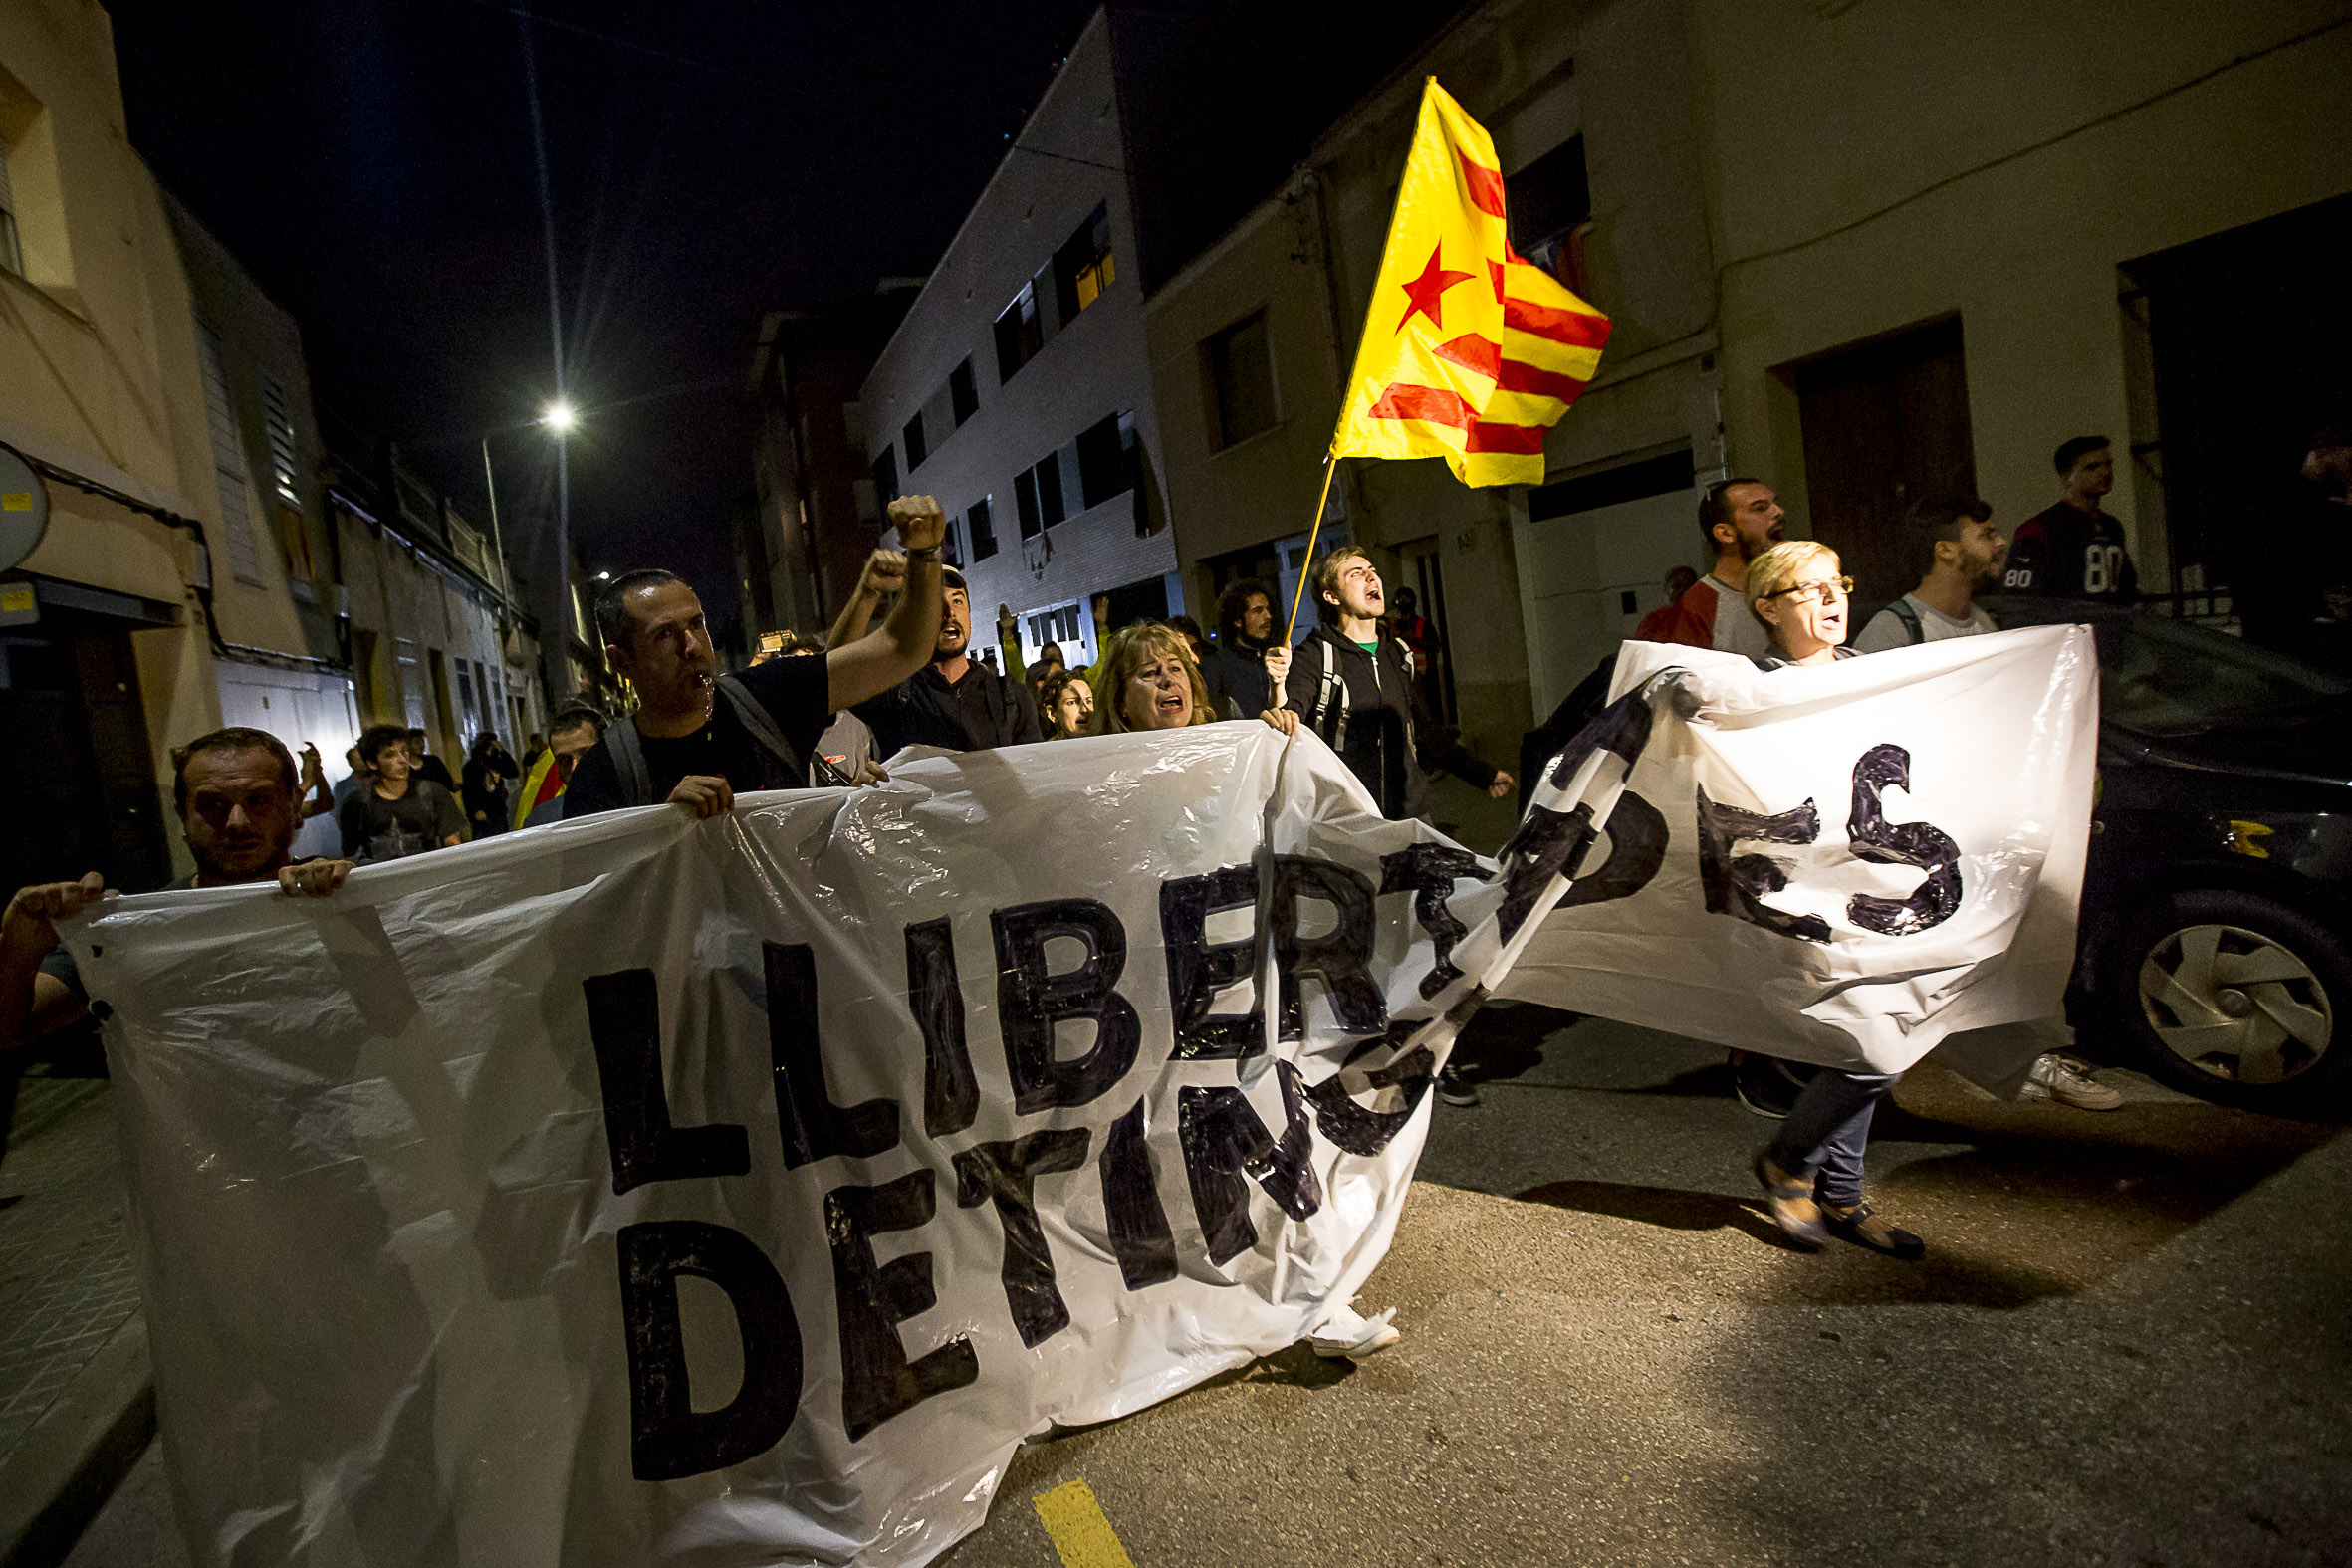 Catalan activist not allowed to talk to his lawyer after 3 weeks in jail - VilaWeb